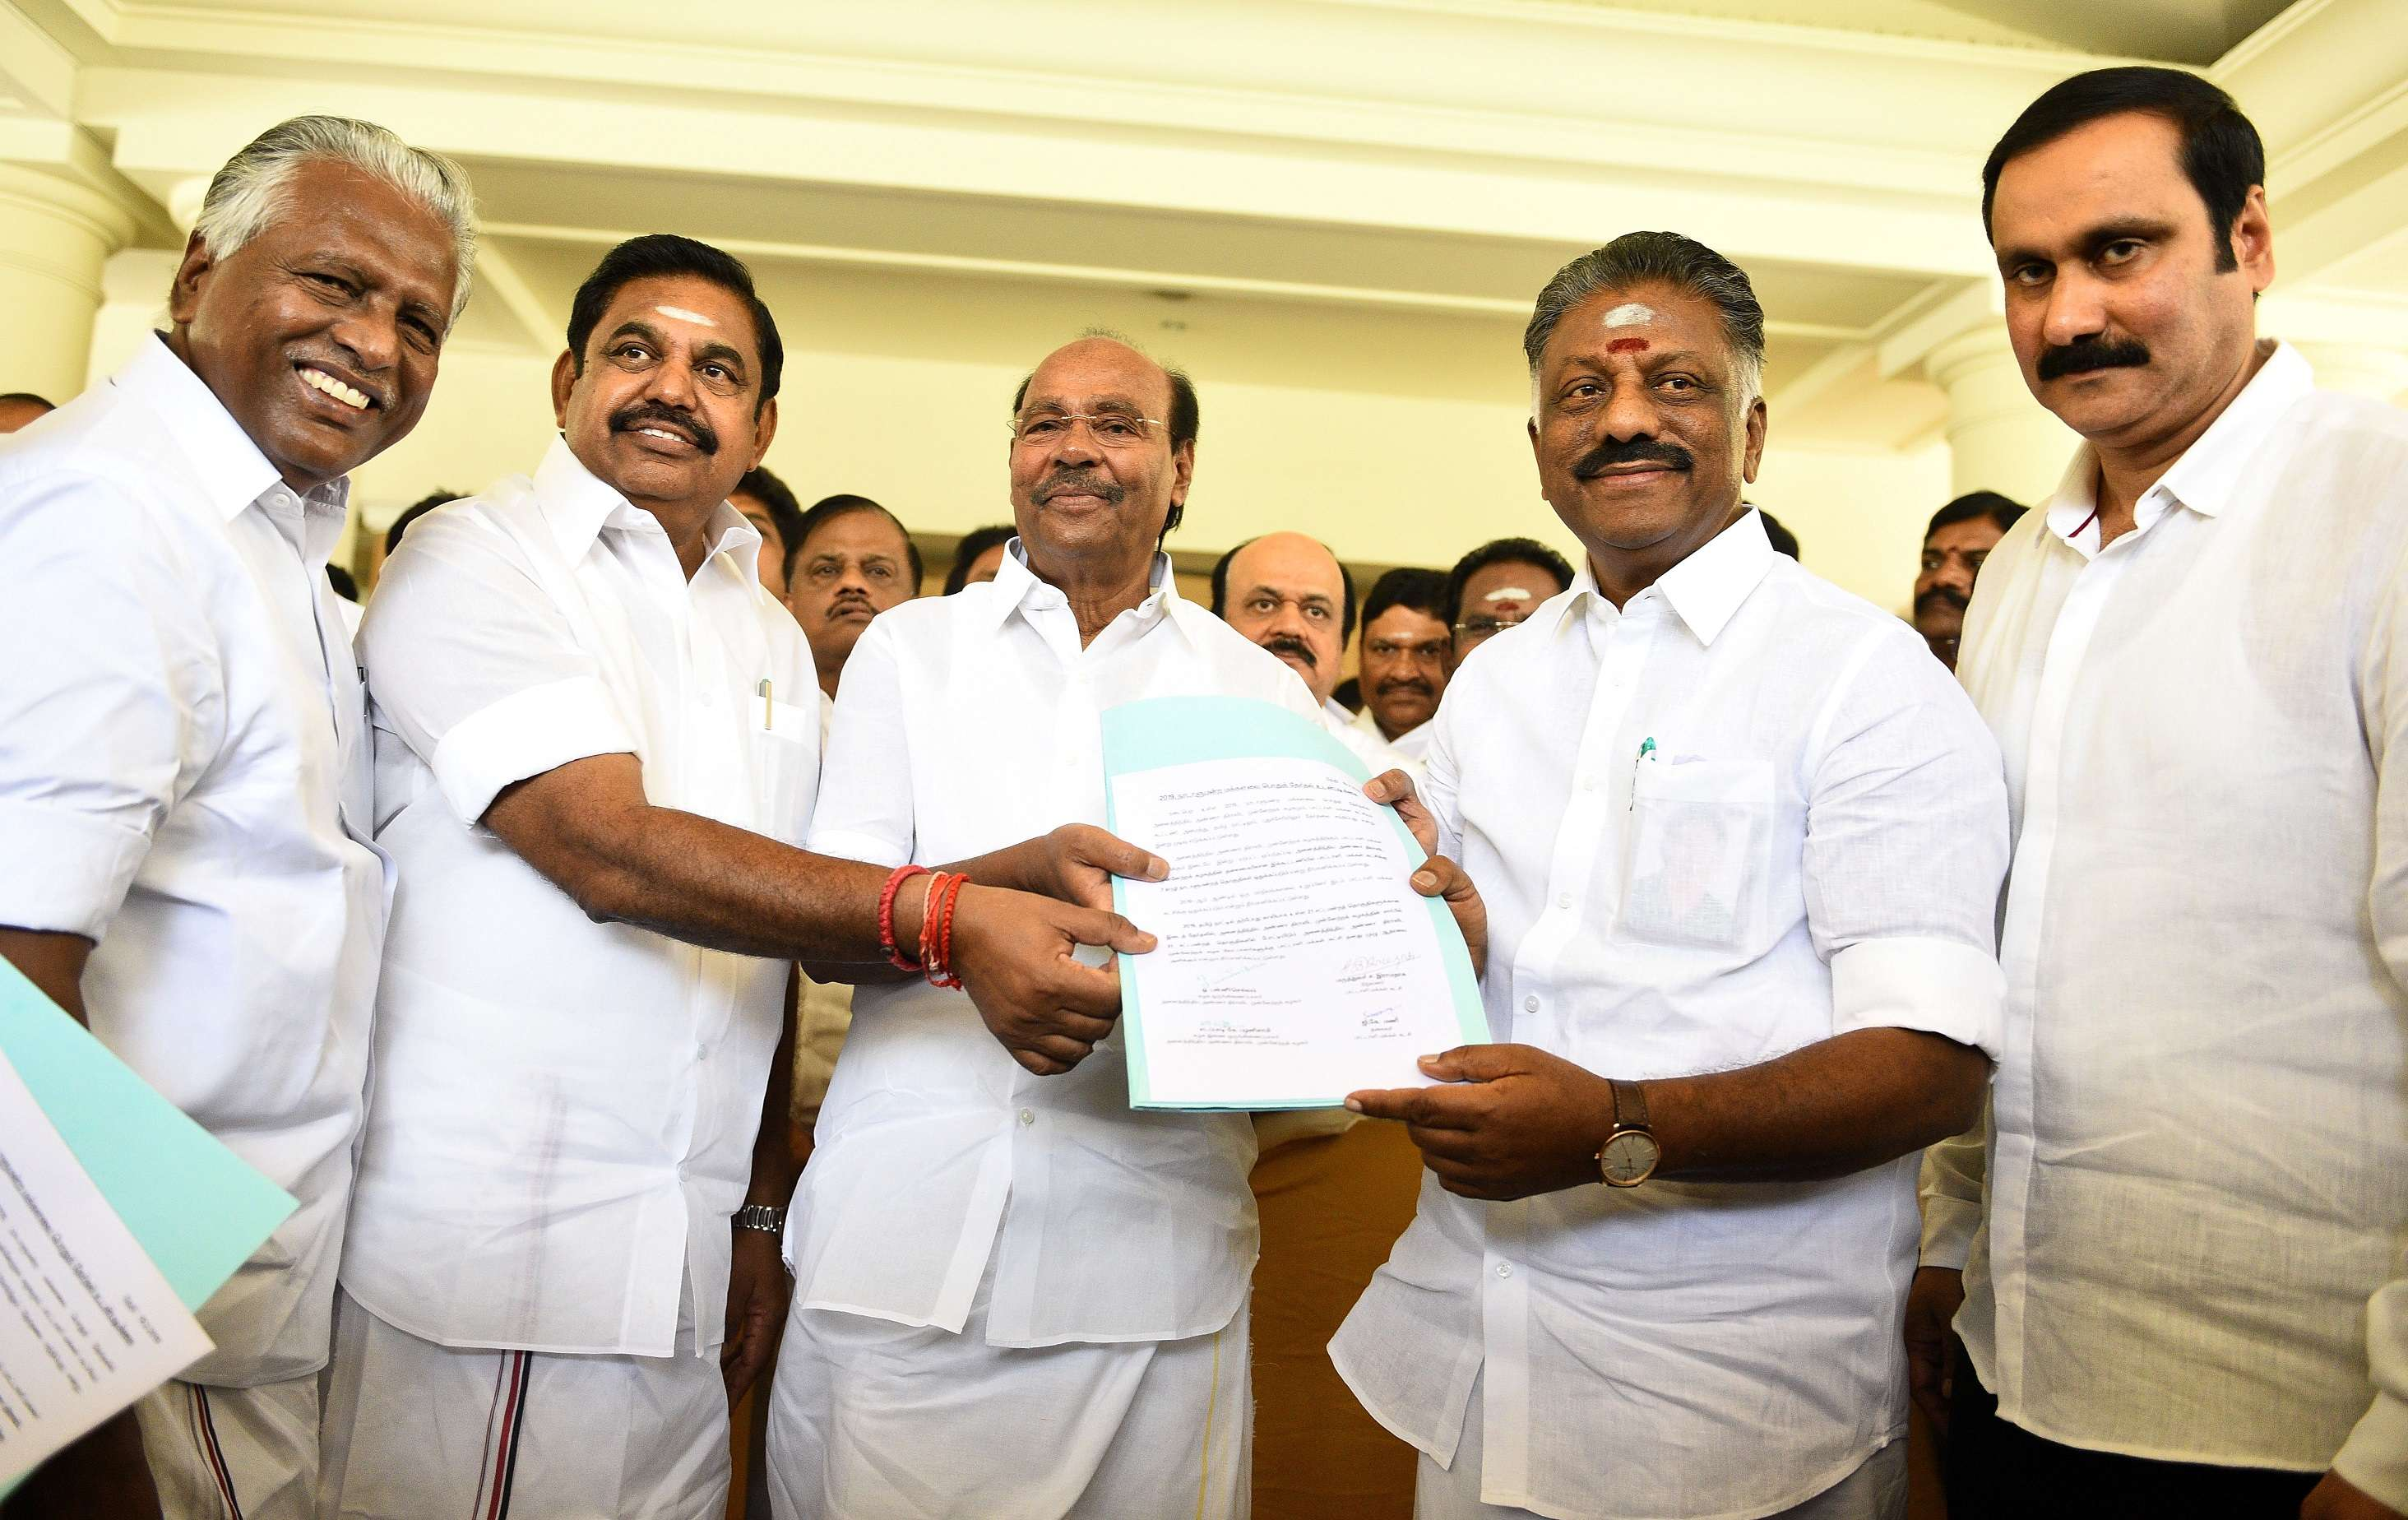 Surprise! AIADMK is among India's most collegial parties today